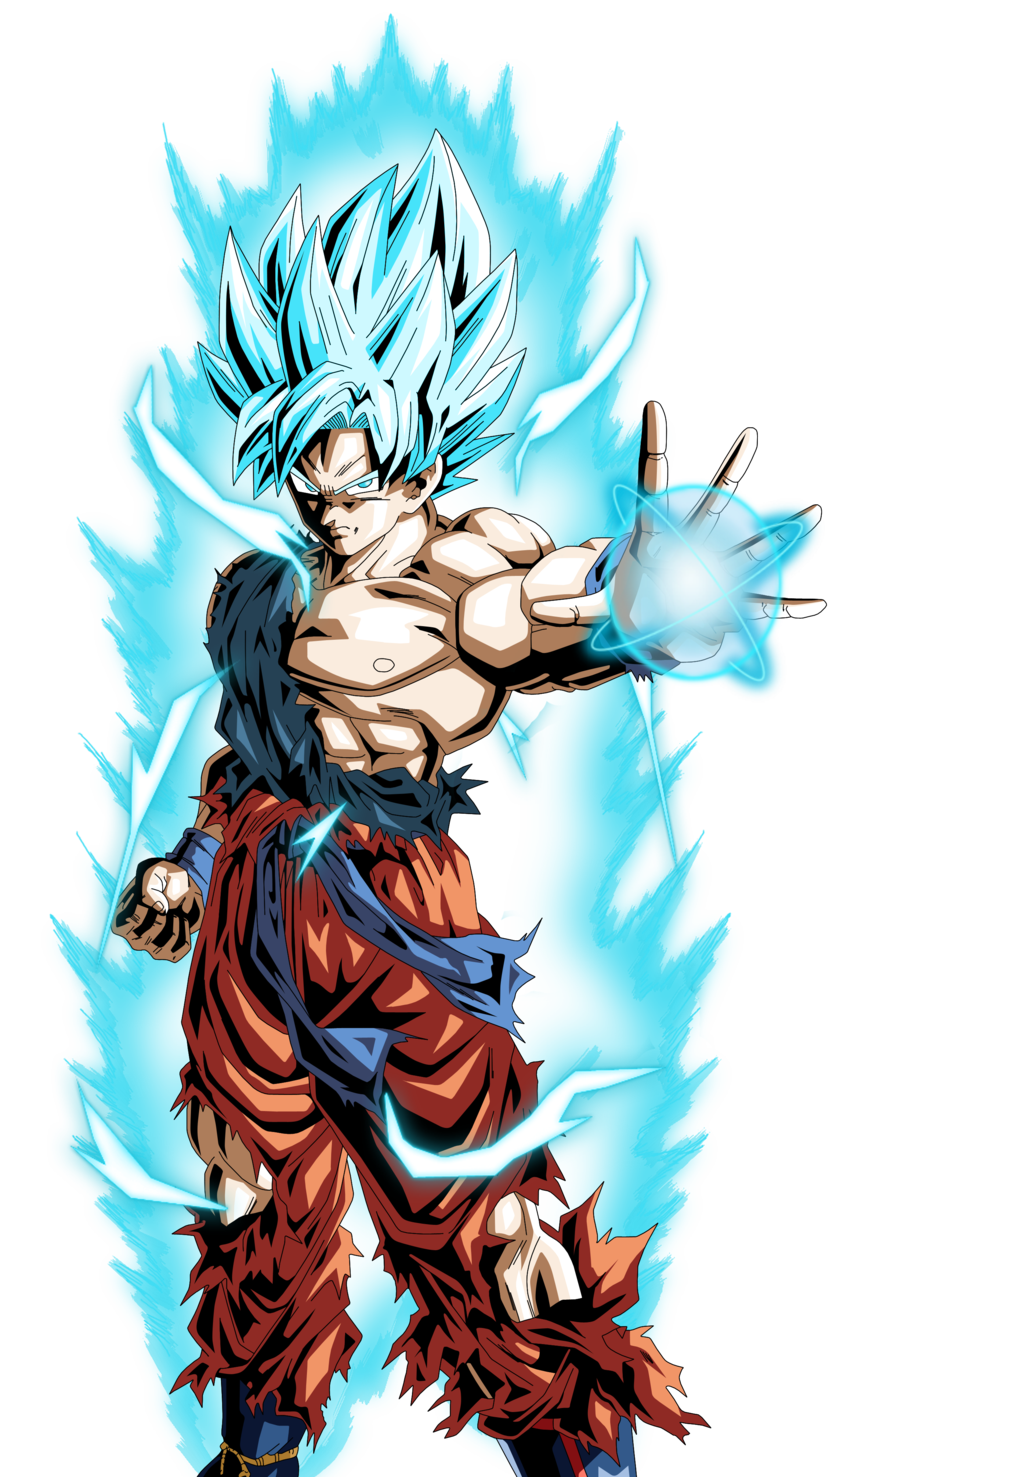 Super Saiyan God Goku Wallpaper Wallpapersafari